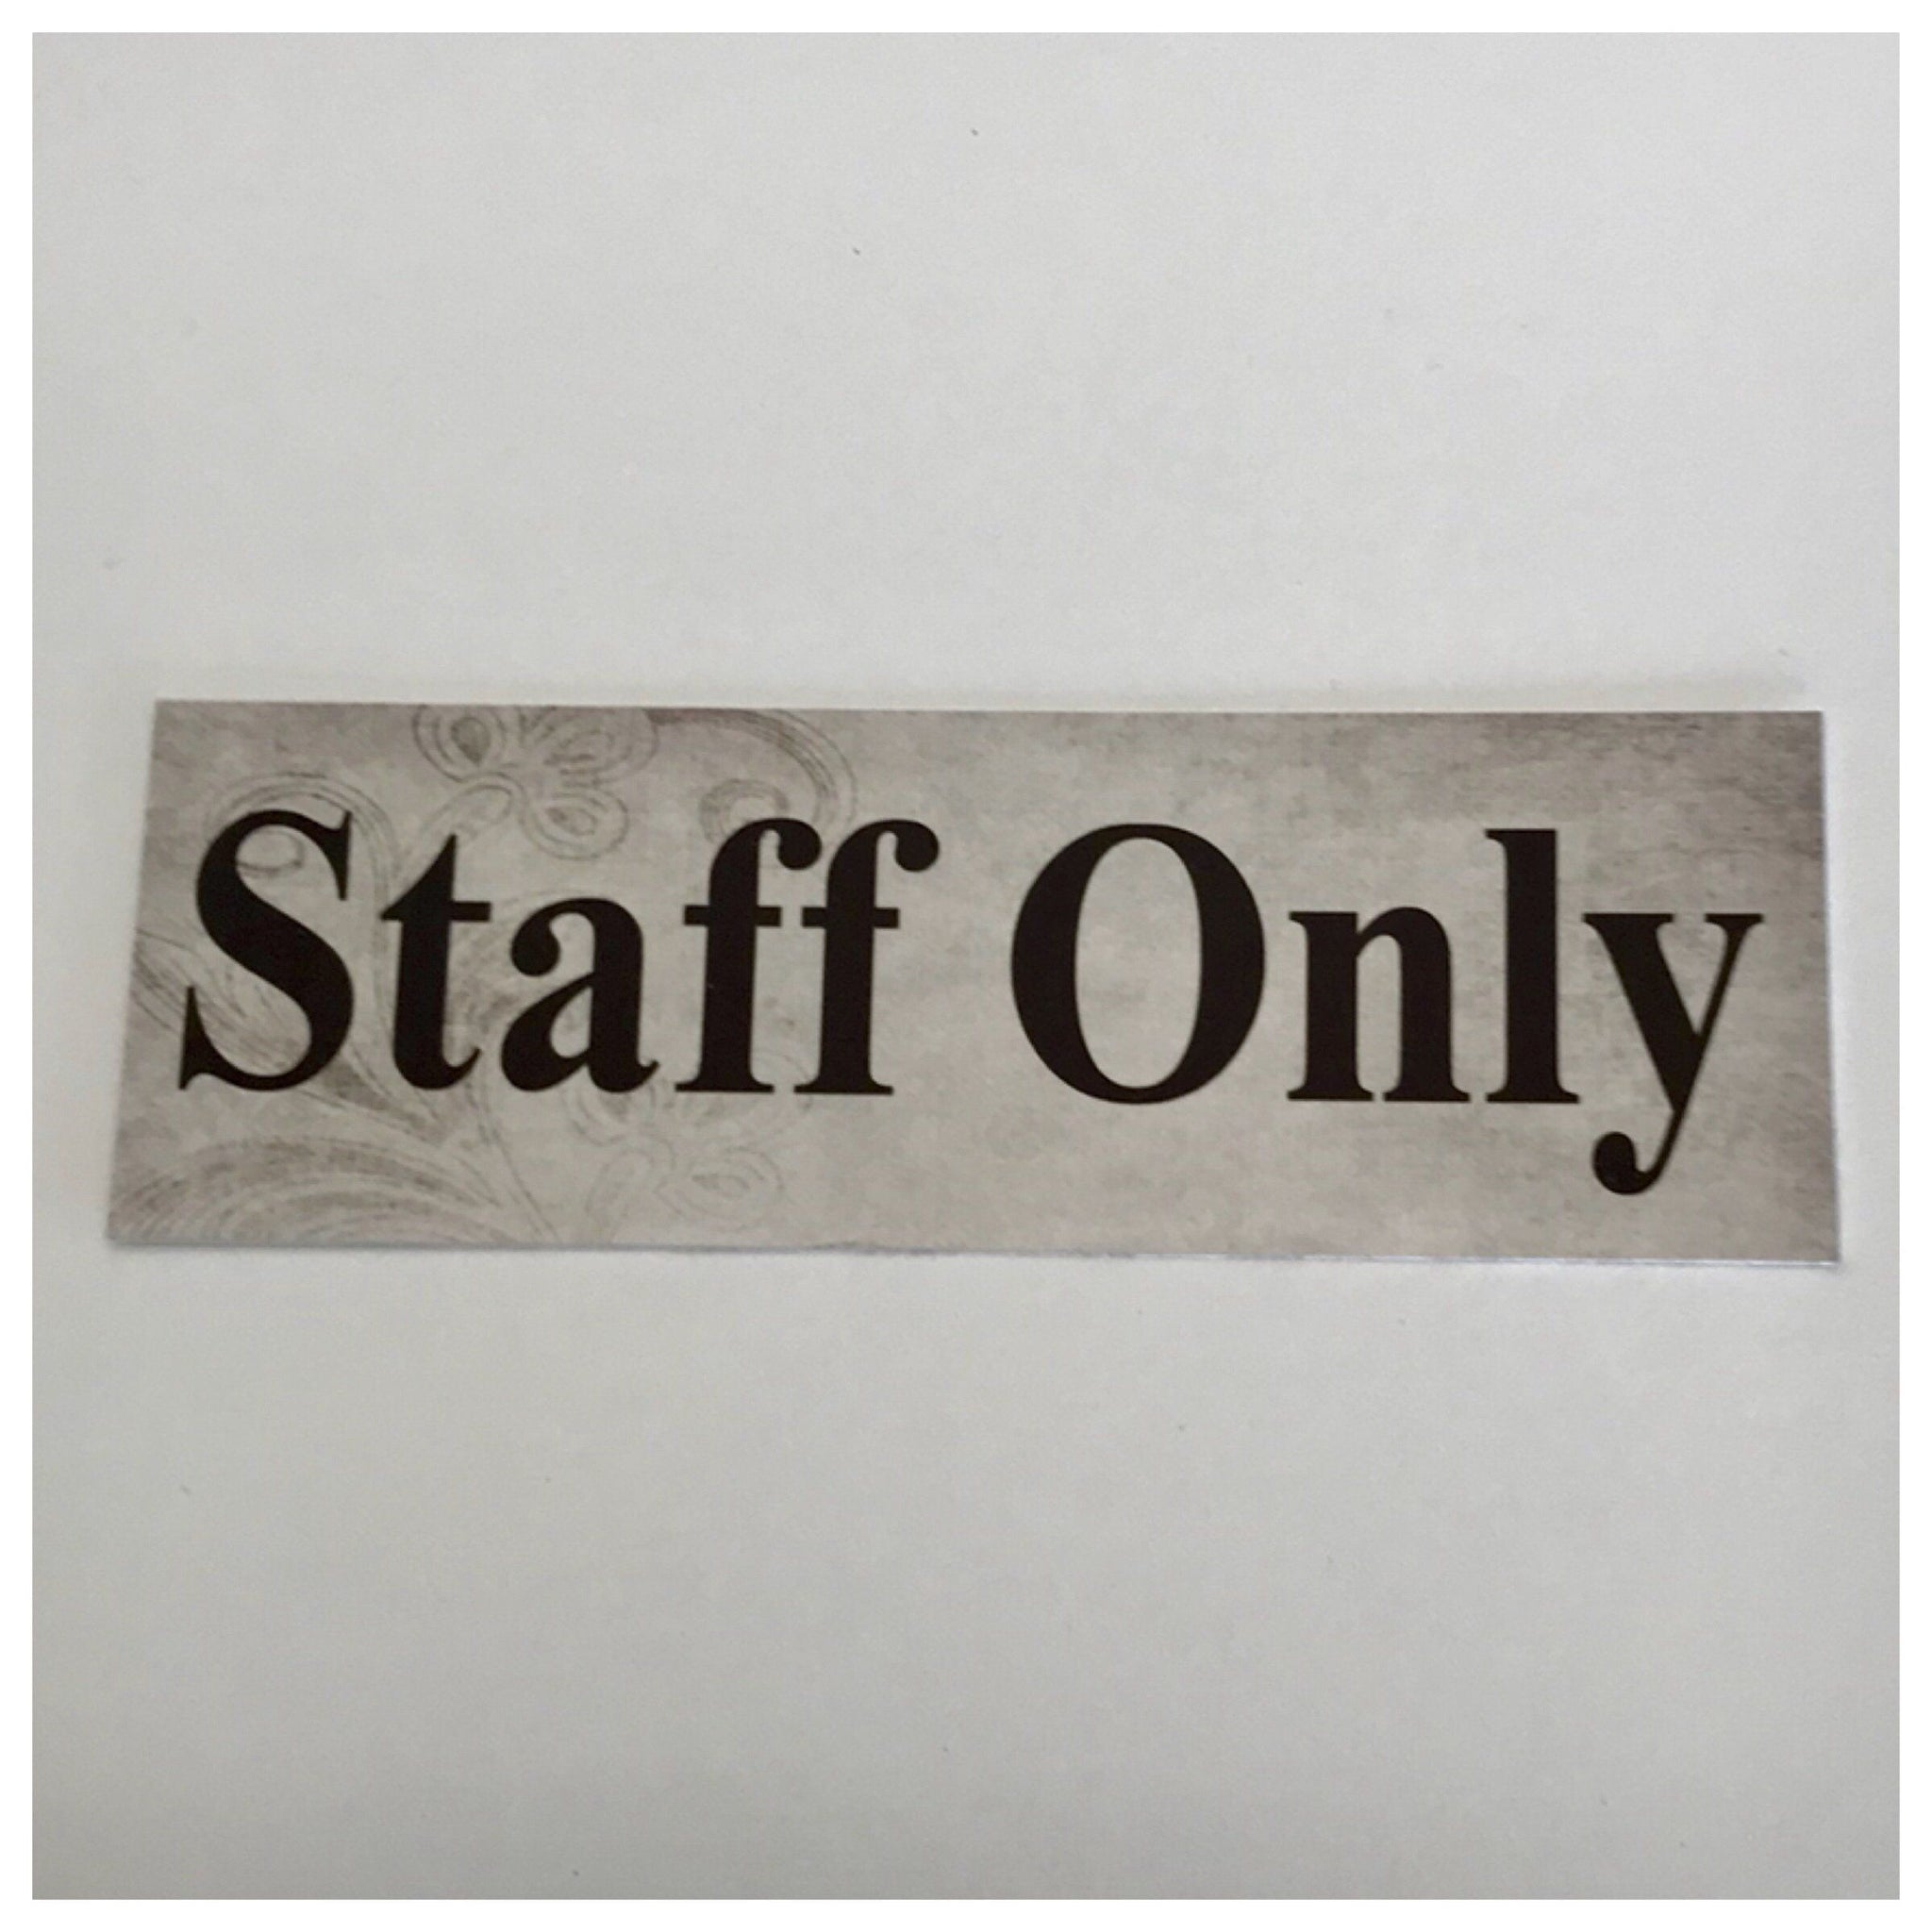 Staff Only Vintage Shabby Chic Sign Wall Plaque or Hanging - The Renmy Store